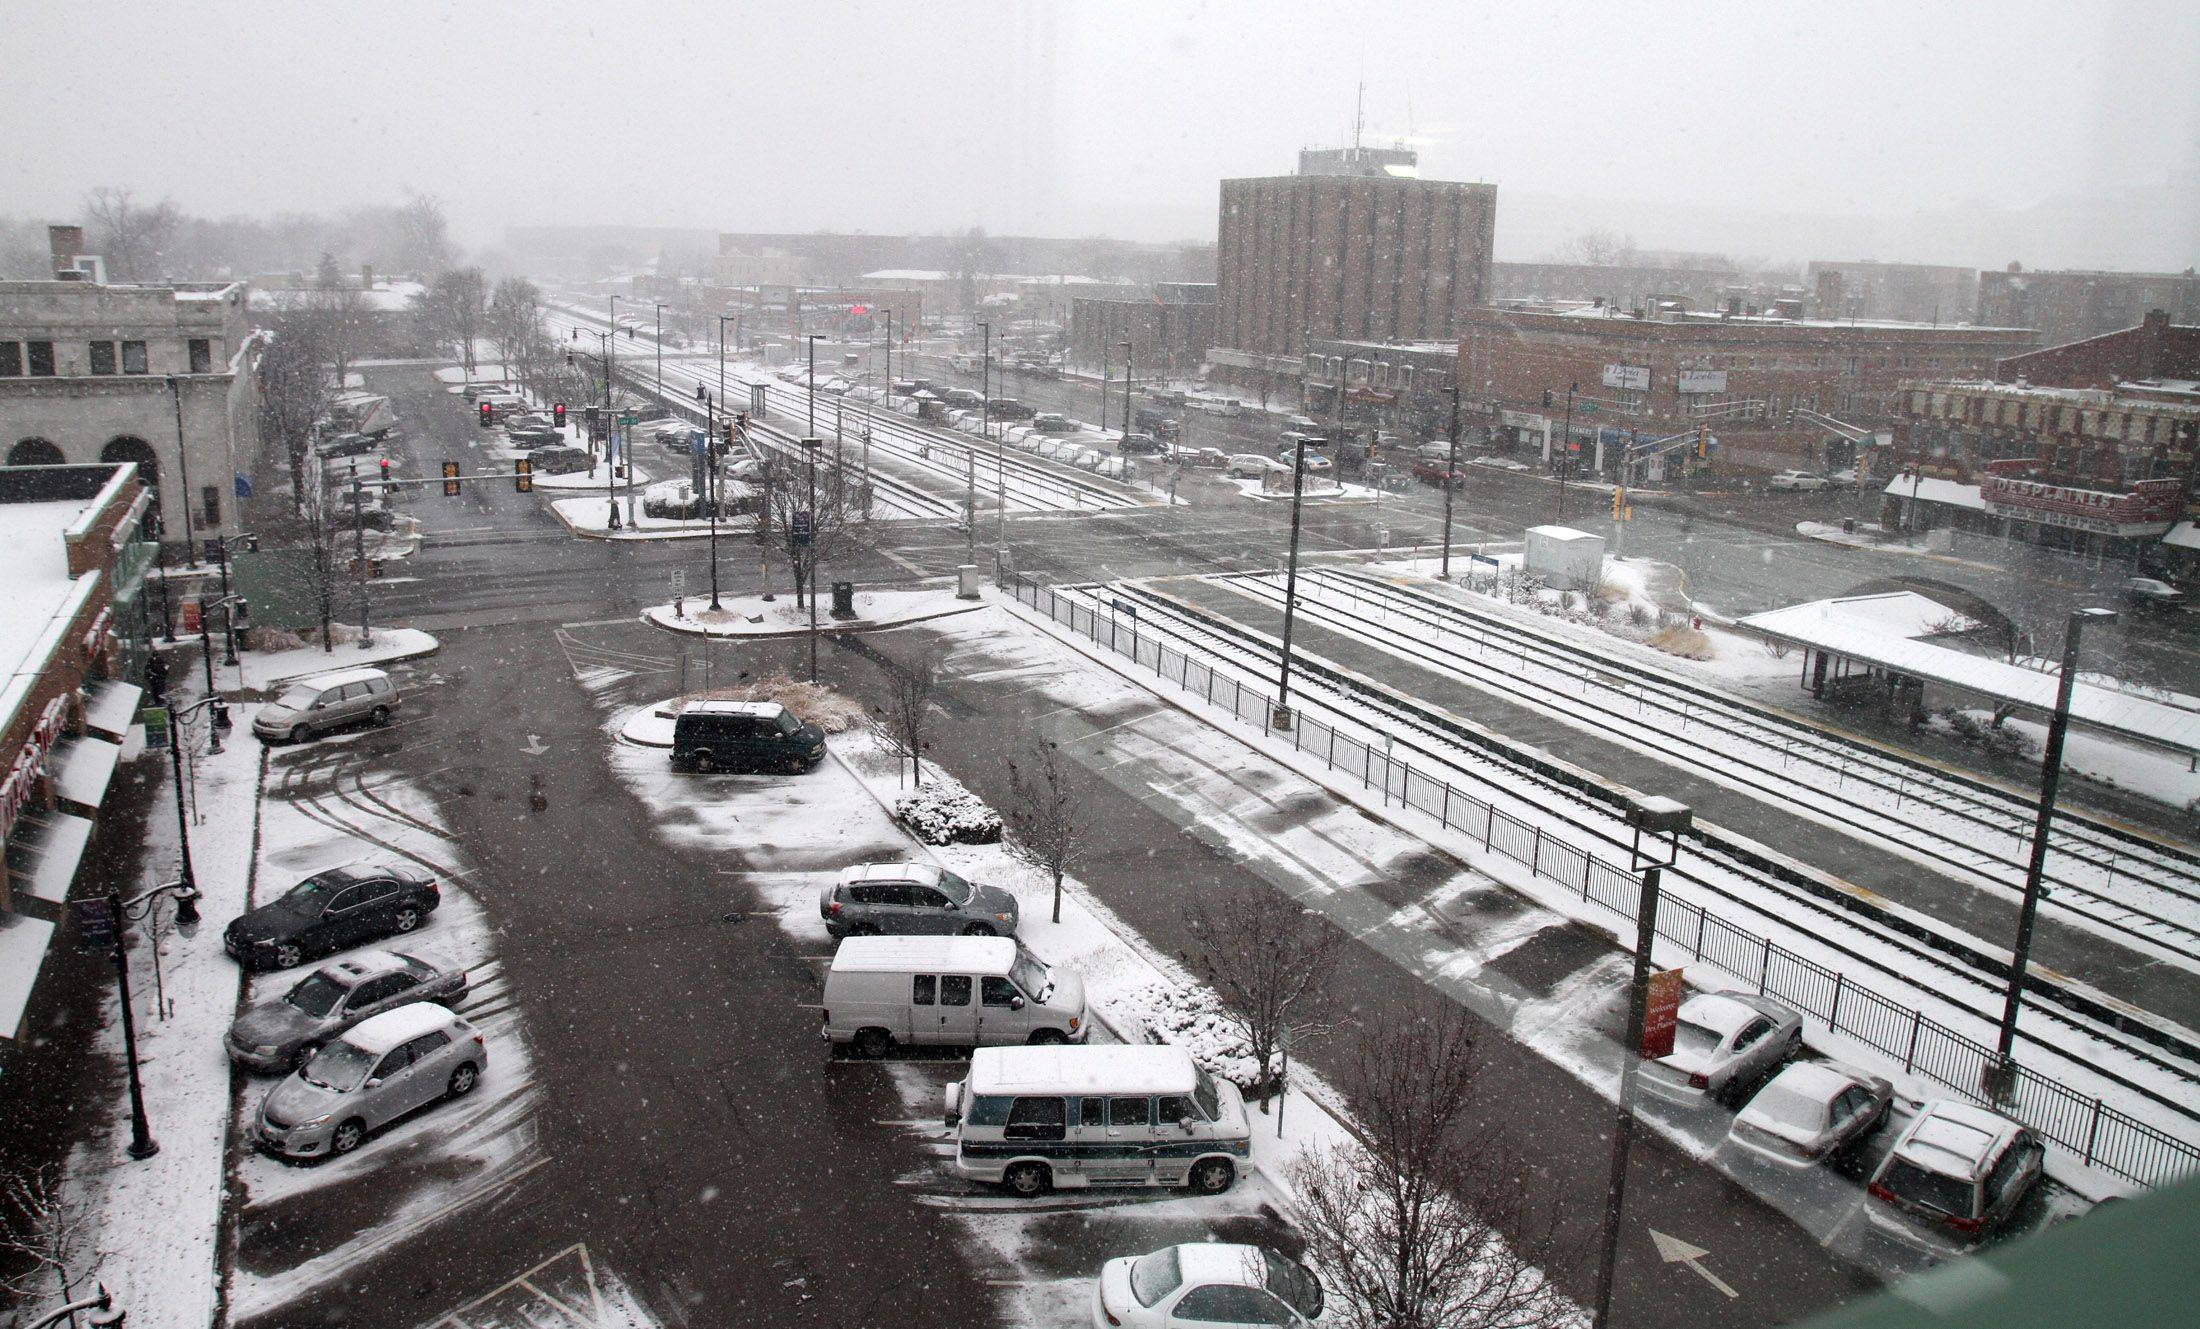 A view of Northwest Highway and City of Des Plaines Civic Center from the third floor of the Des Plaines Library.